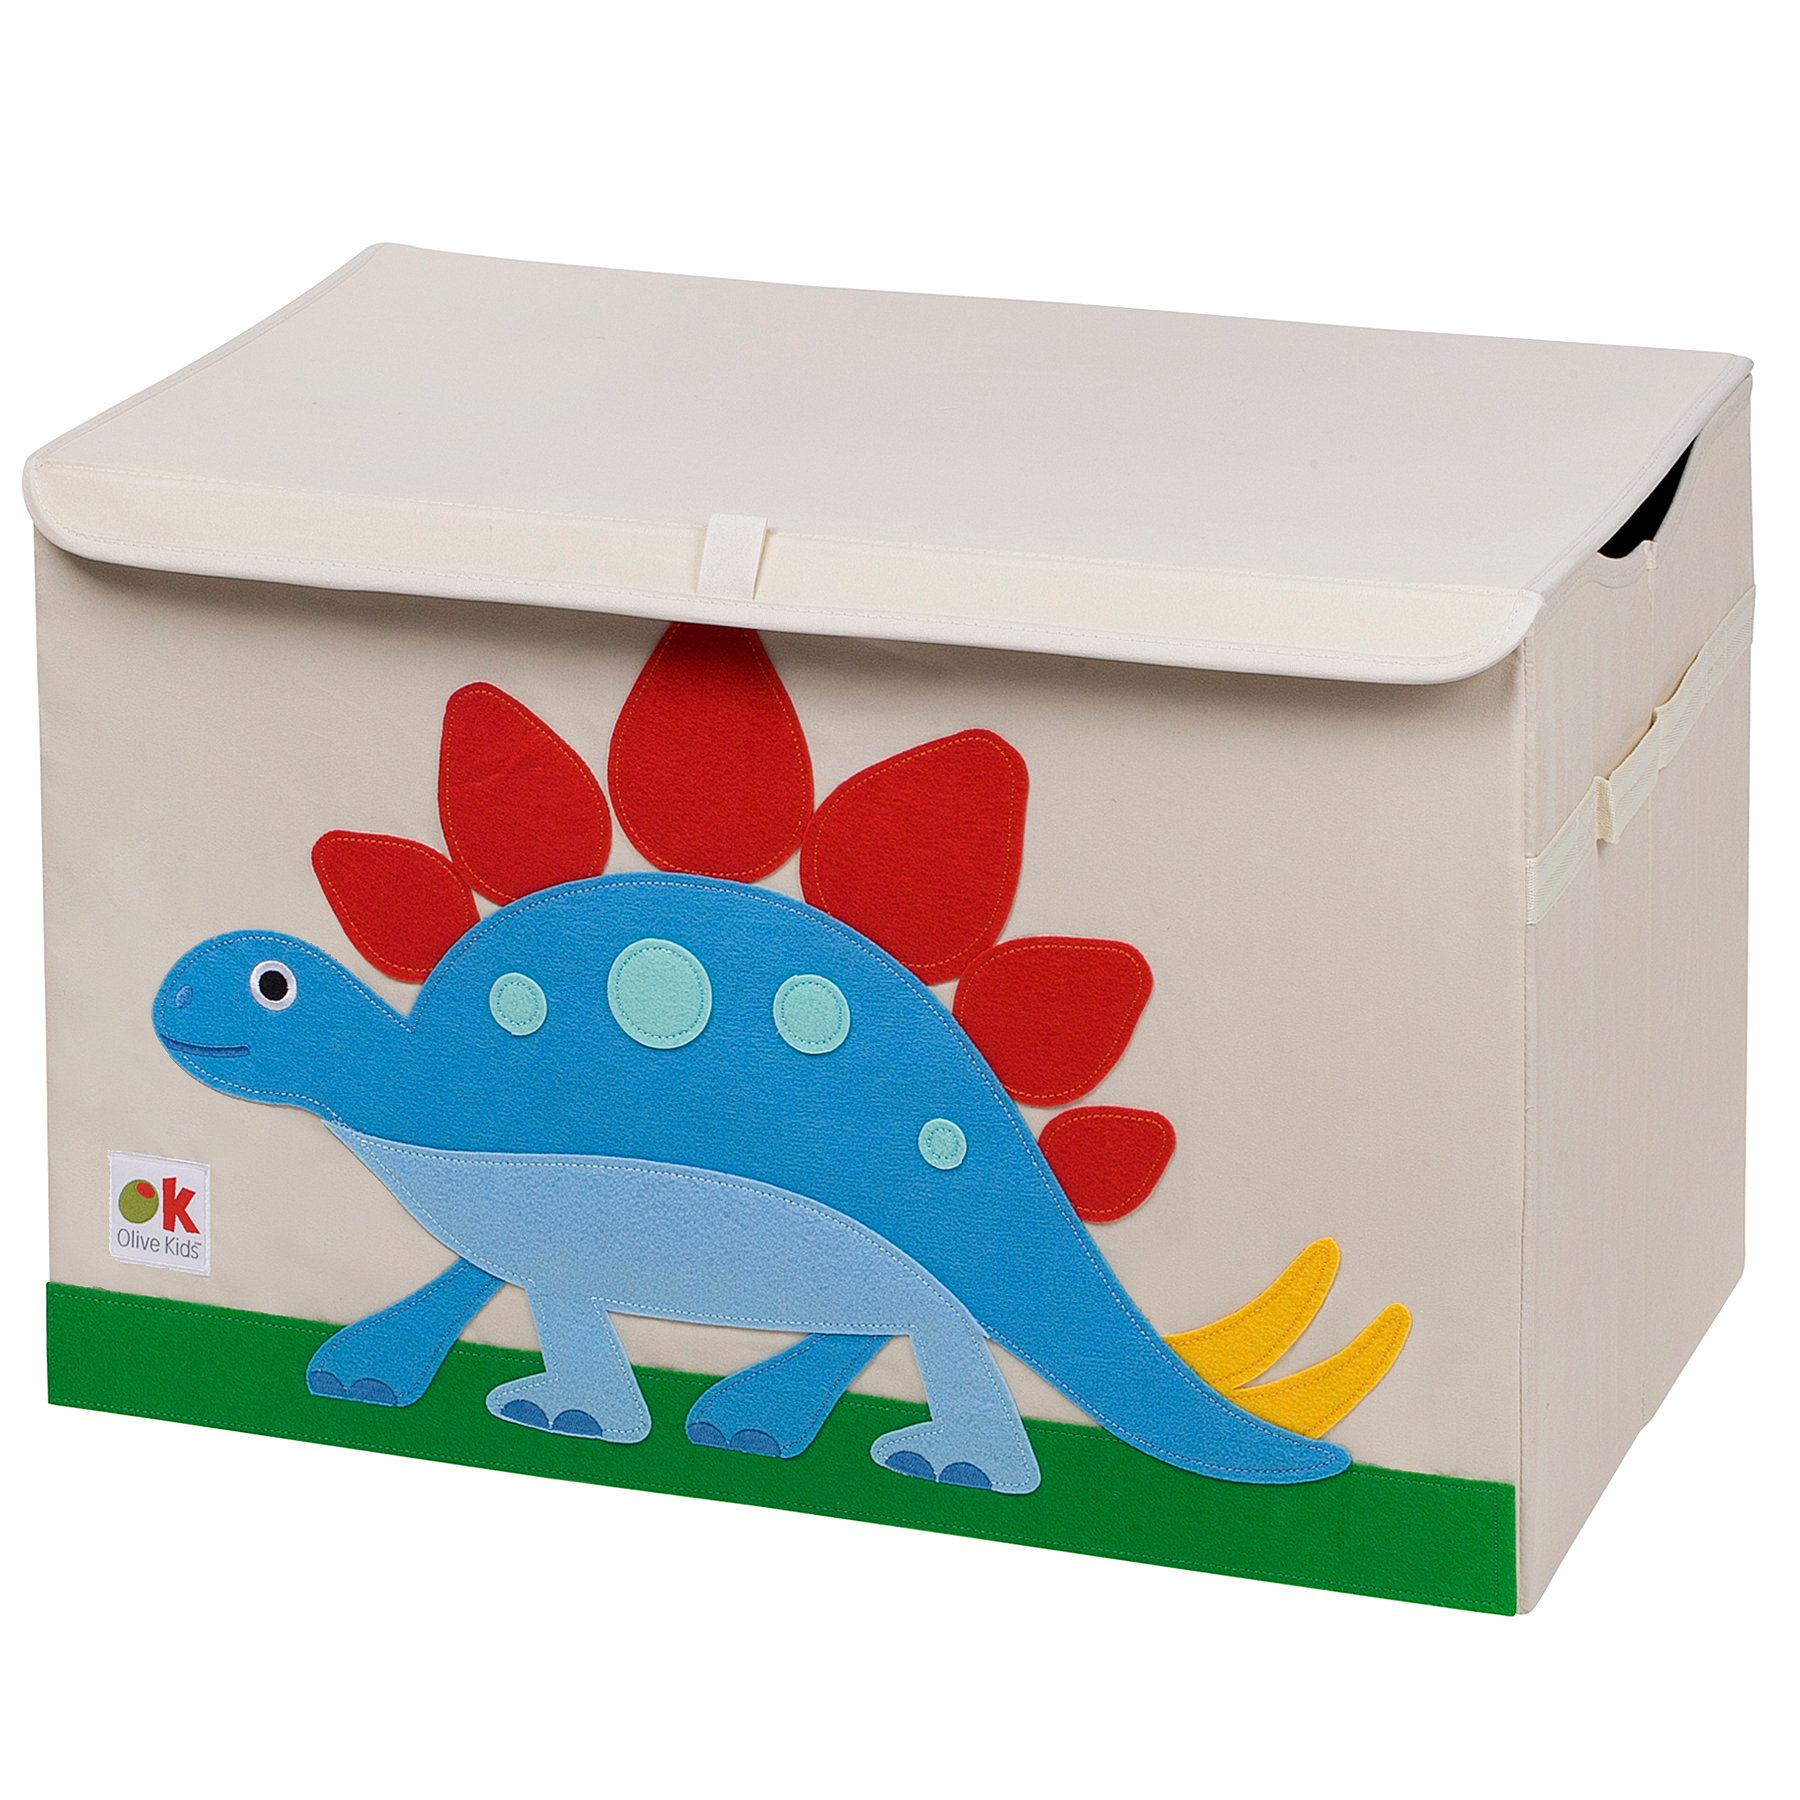 Wildkin Olive Kids Toy Chest, Perfect for Playroom Organization, Measures 24 x 15 x 14 Inches, Coordinates with Other Room Décor – Dinosaur Land